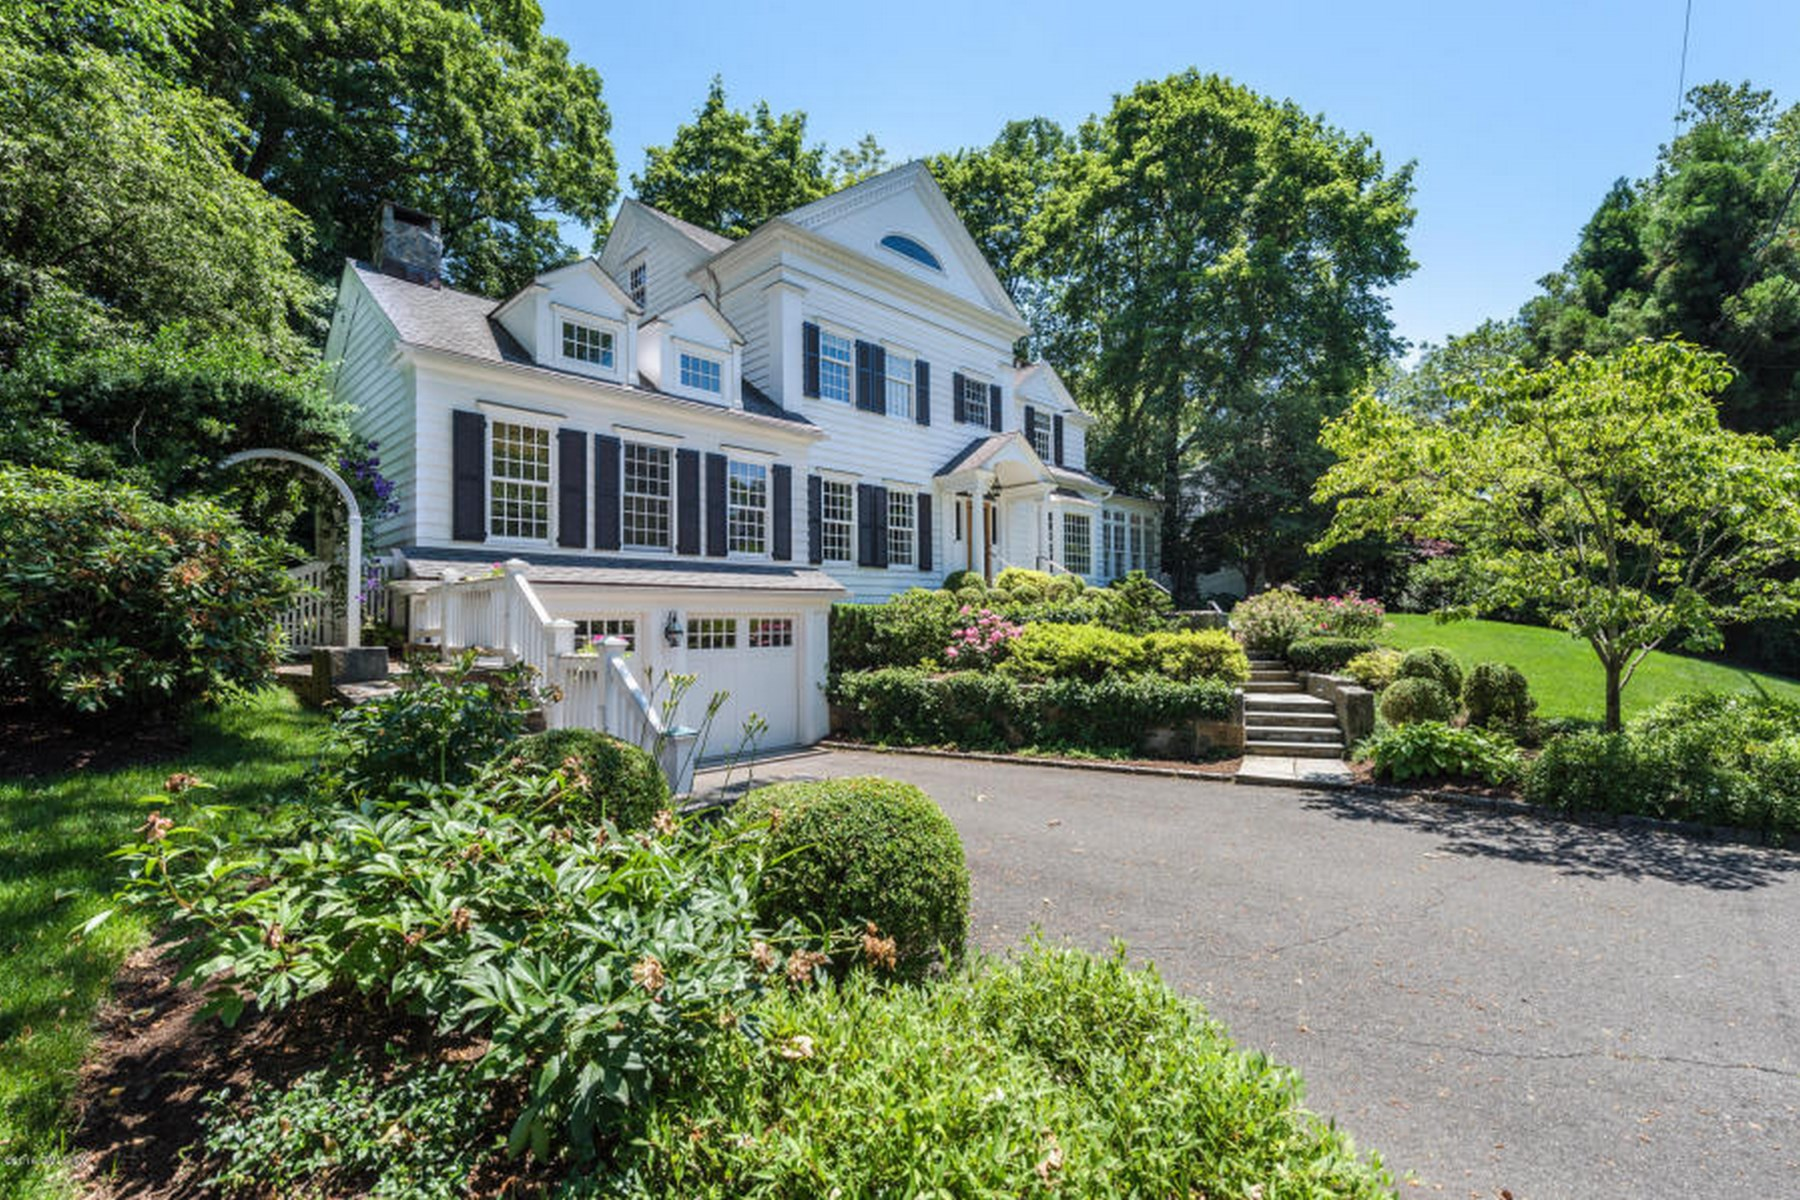 Single Family Home for Sale at 19 Stoney Ridge Lane Riverside, Connecticut, 06878 United States